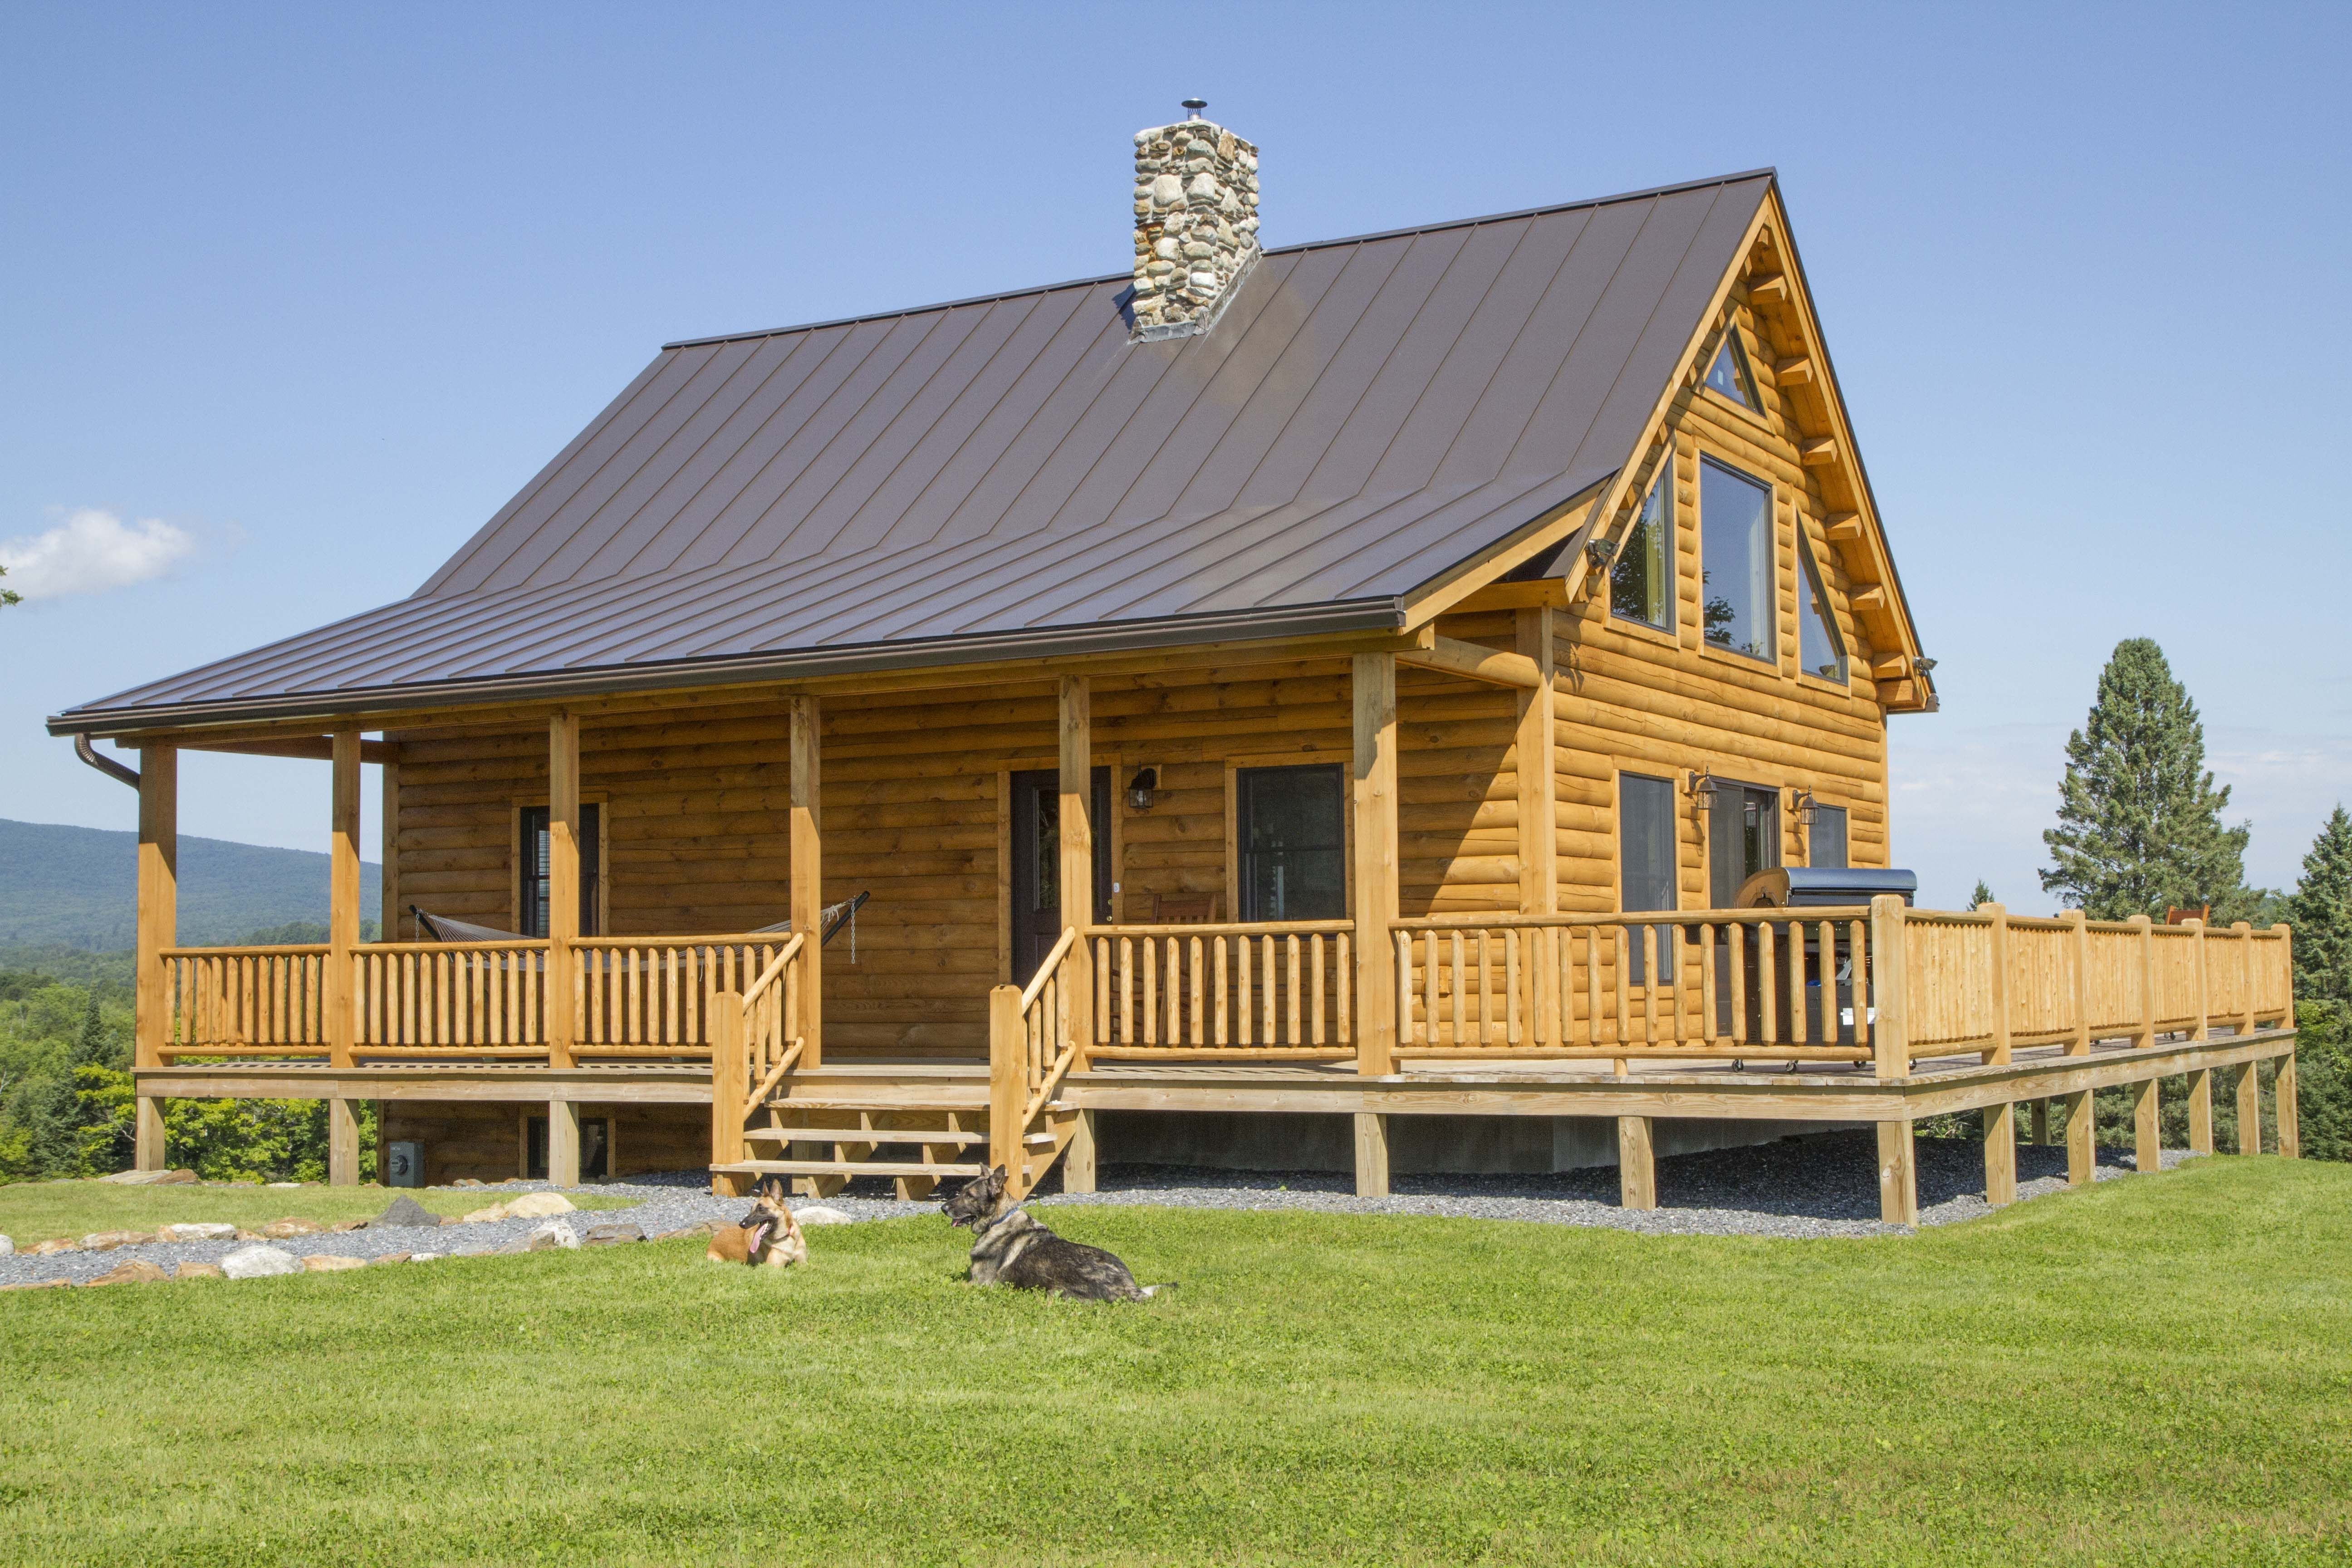 Coventry Log Homes Our Home Designs Craftsman Series The Skyline